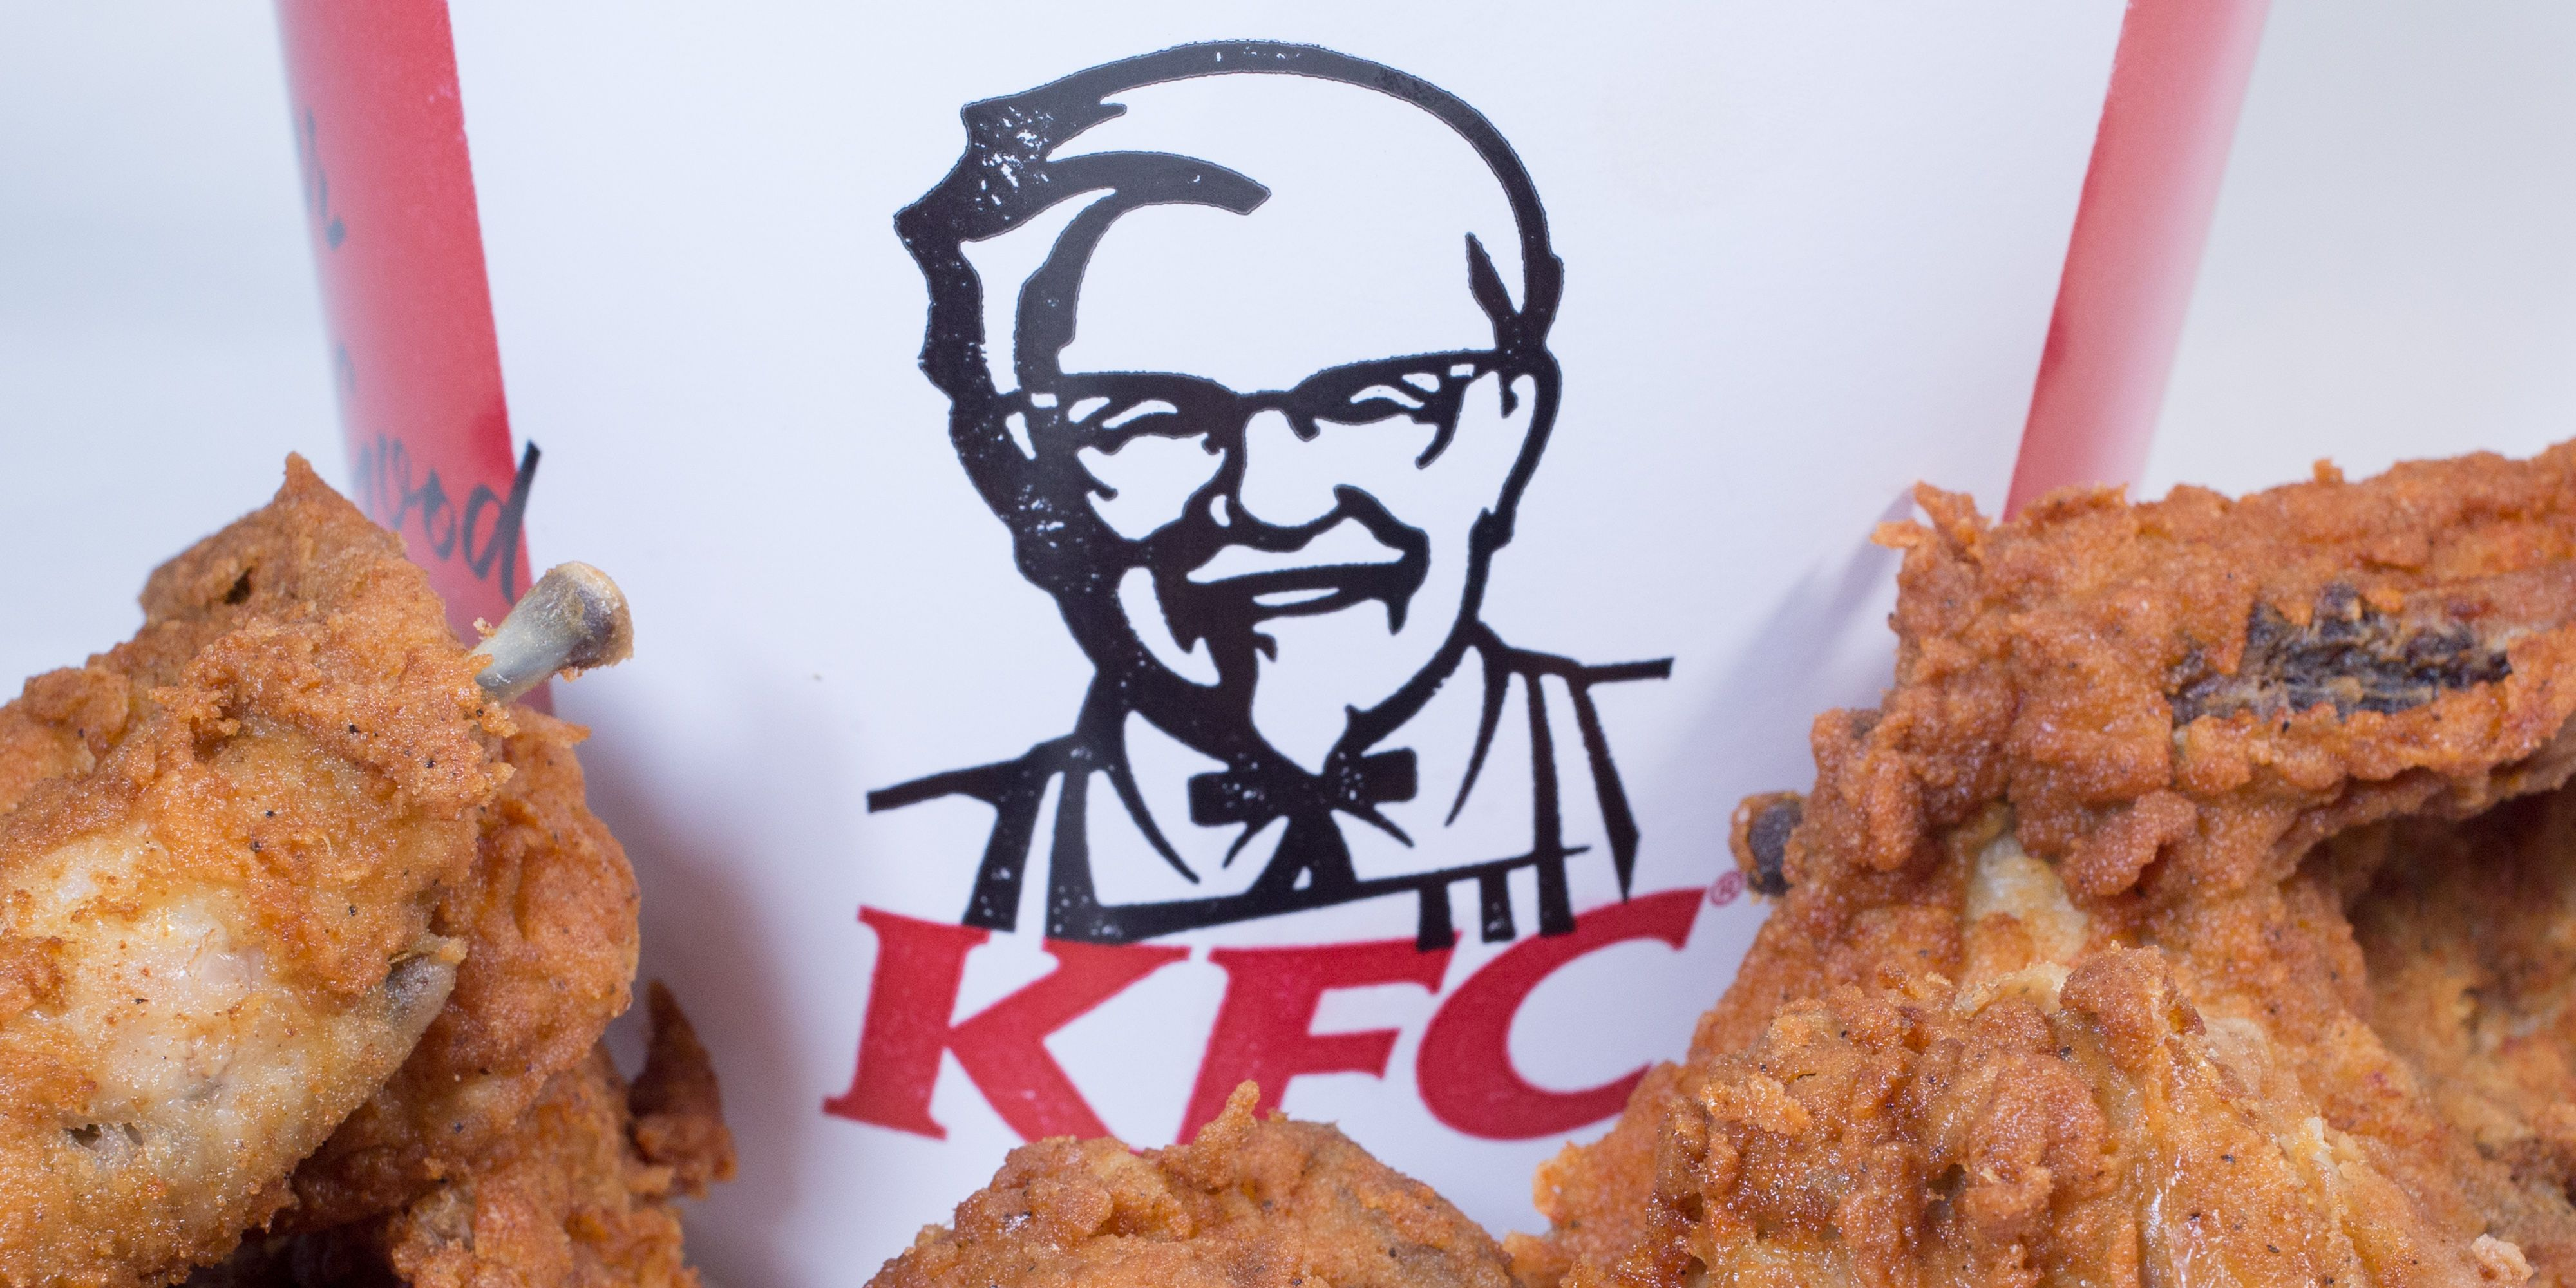 KFC Just Announced It Will Offer Free Delivery Through April 26